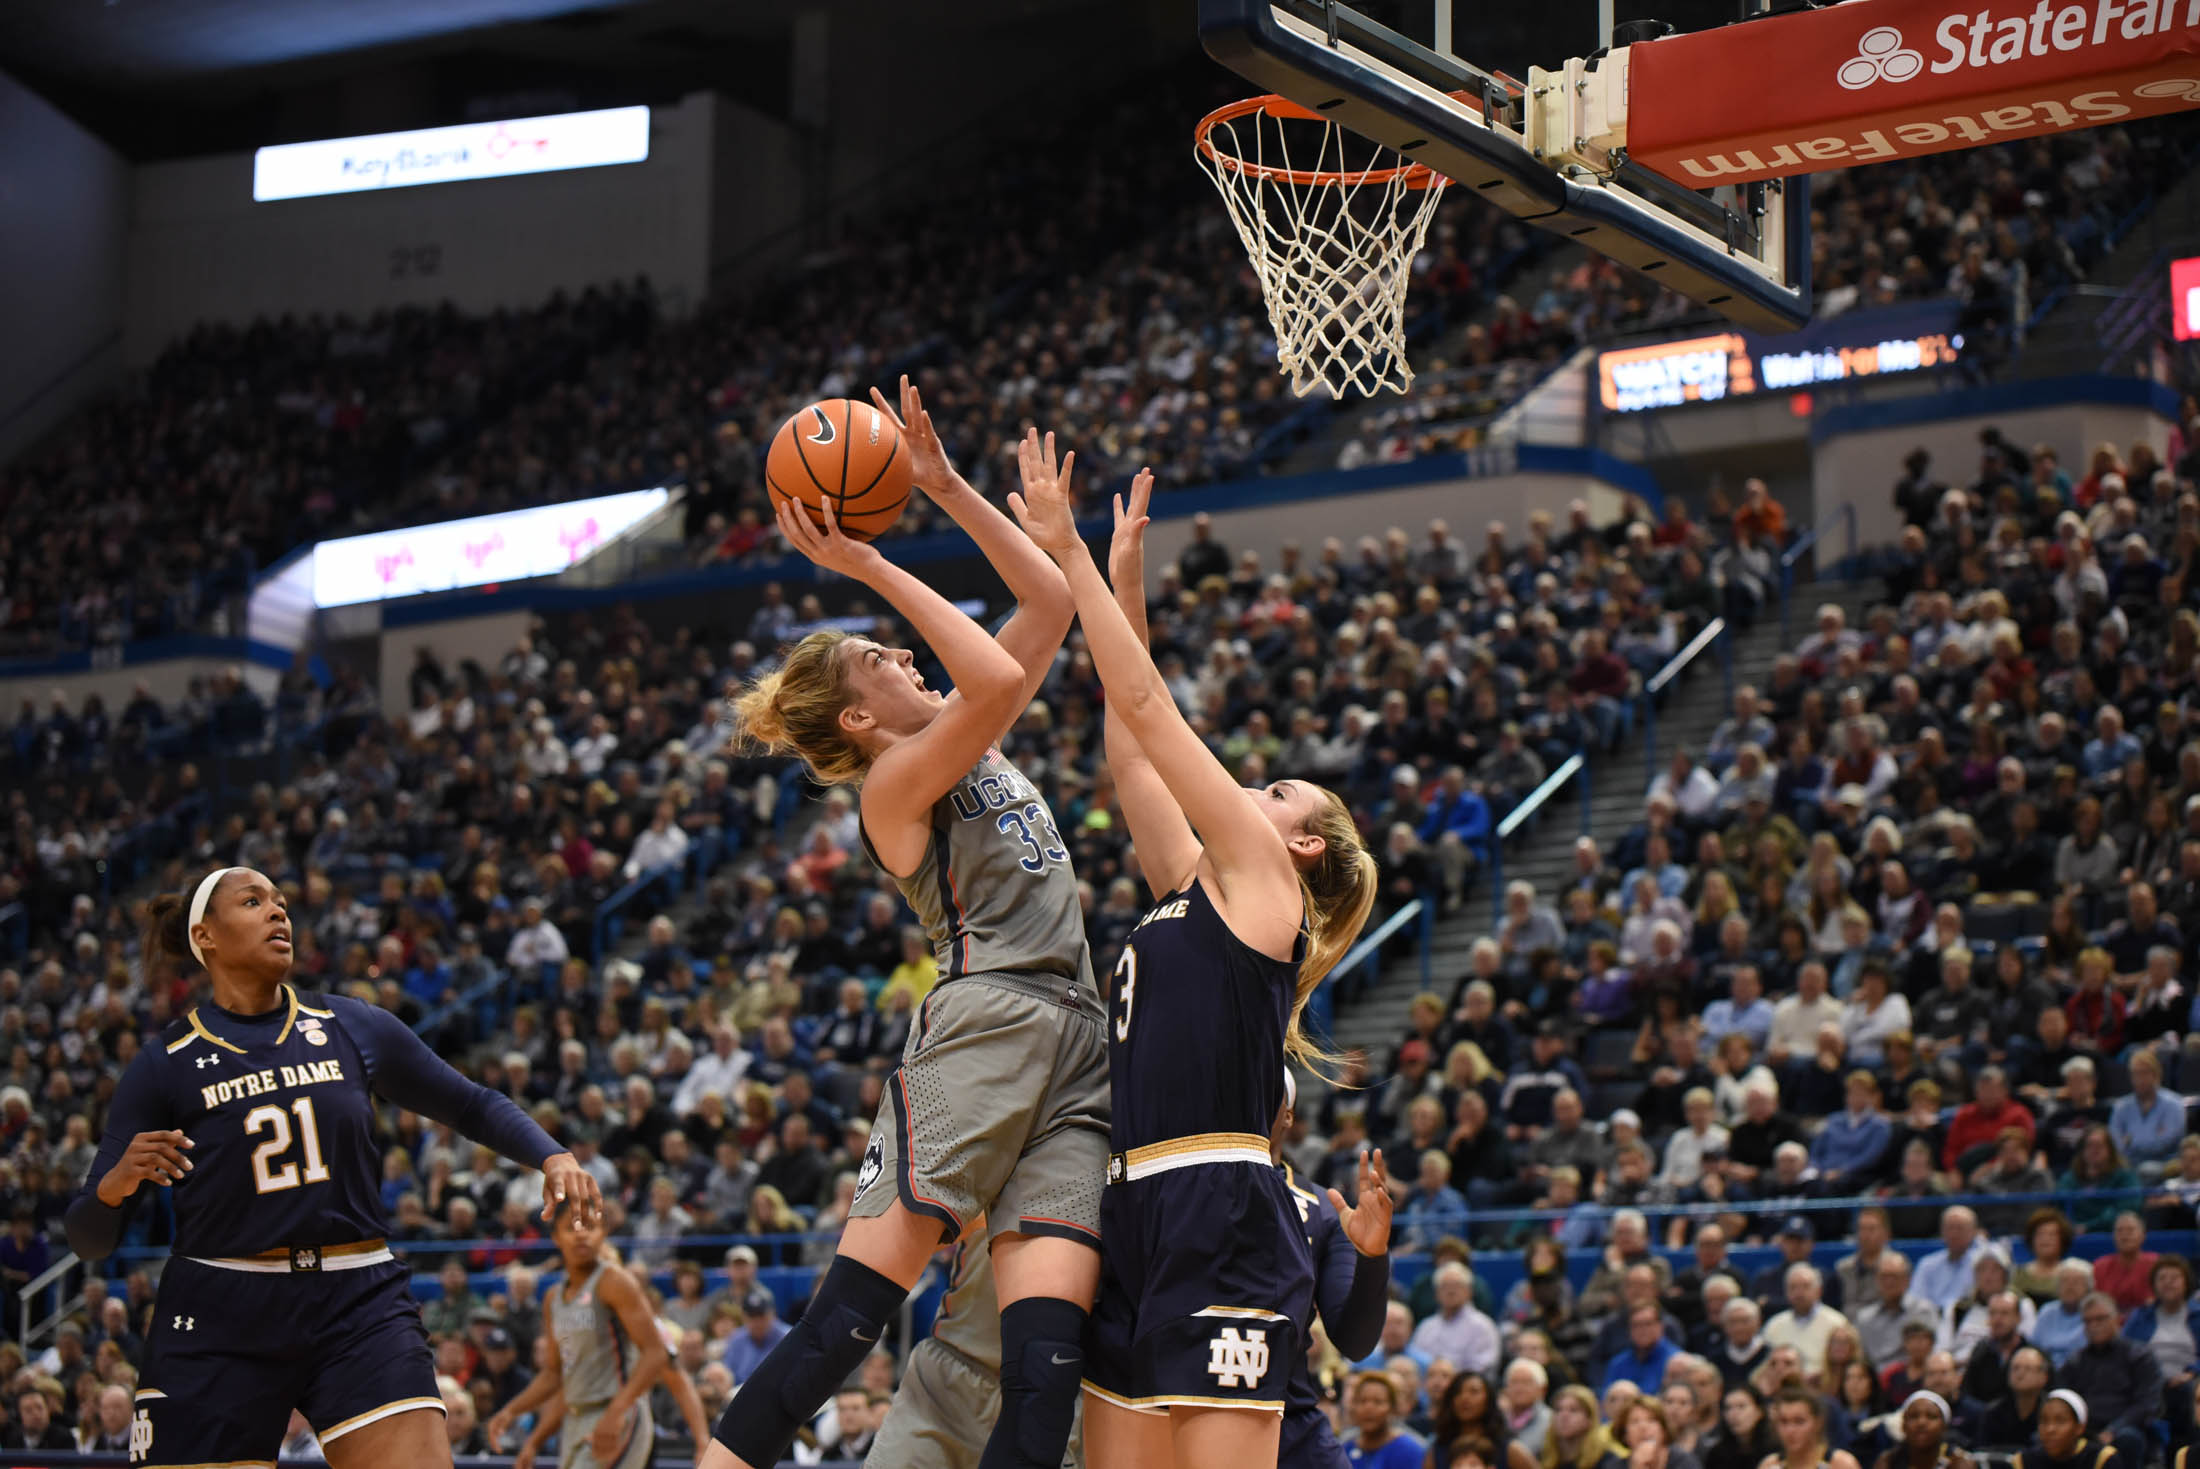 Katie Lou Samuelson fights for a layup ending the game with 18 points. (Charlotte Lao/The Daily Campus)